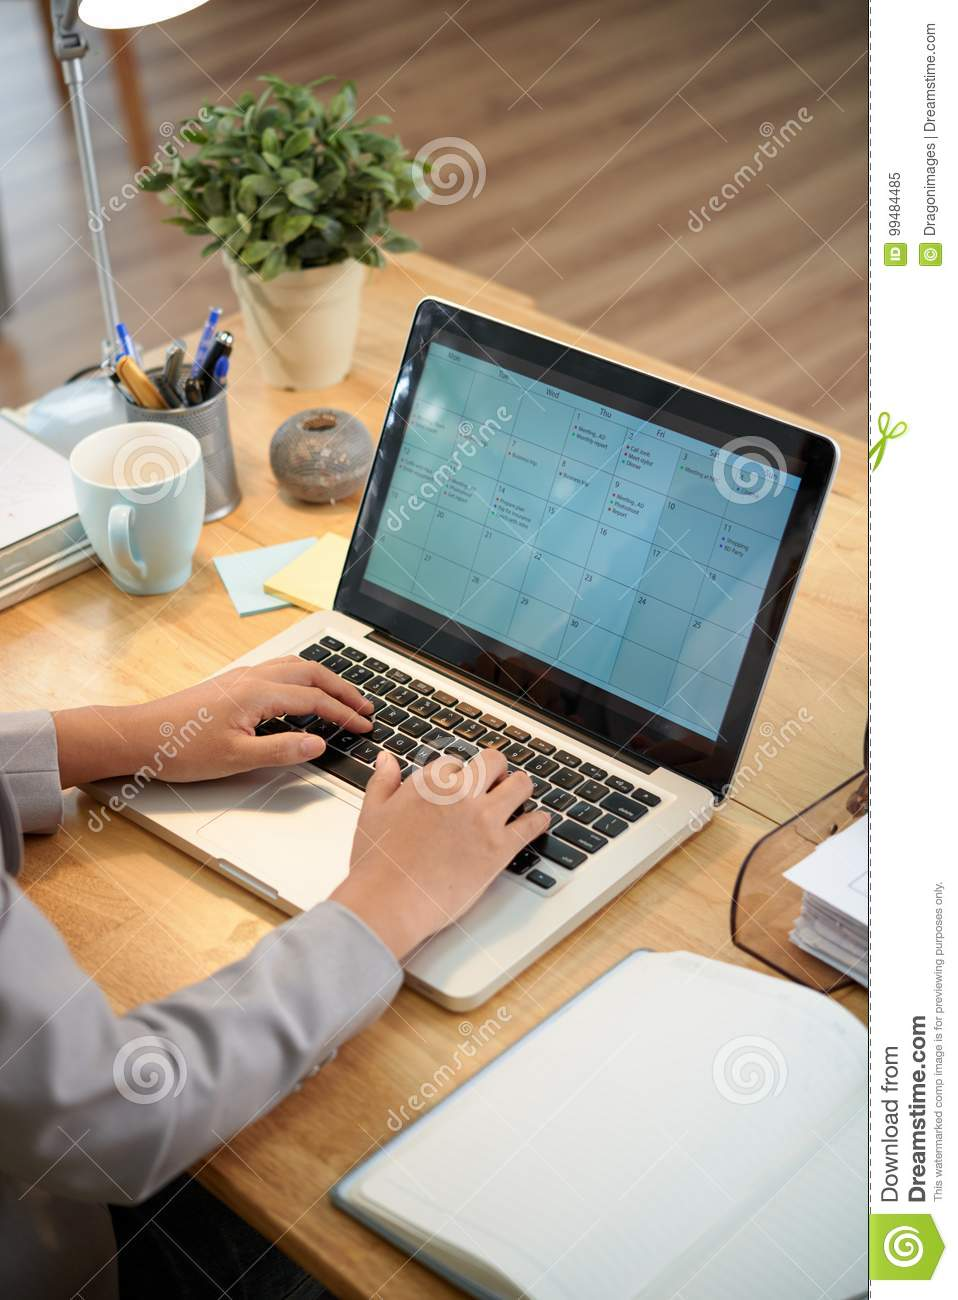 filling online calender stock image image of hands office 99484485